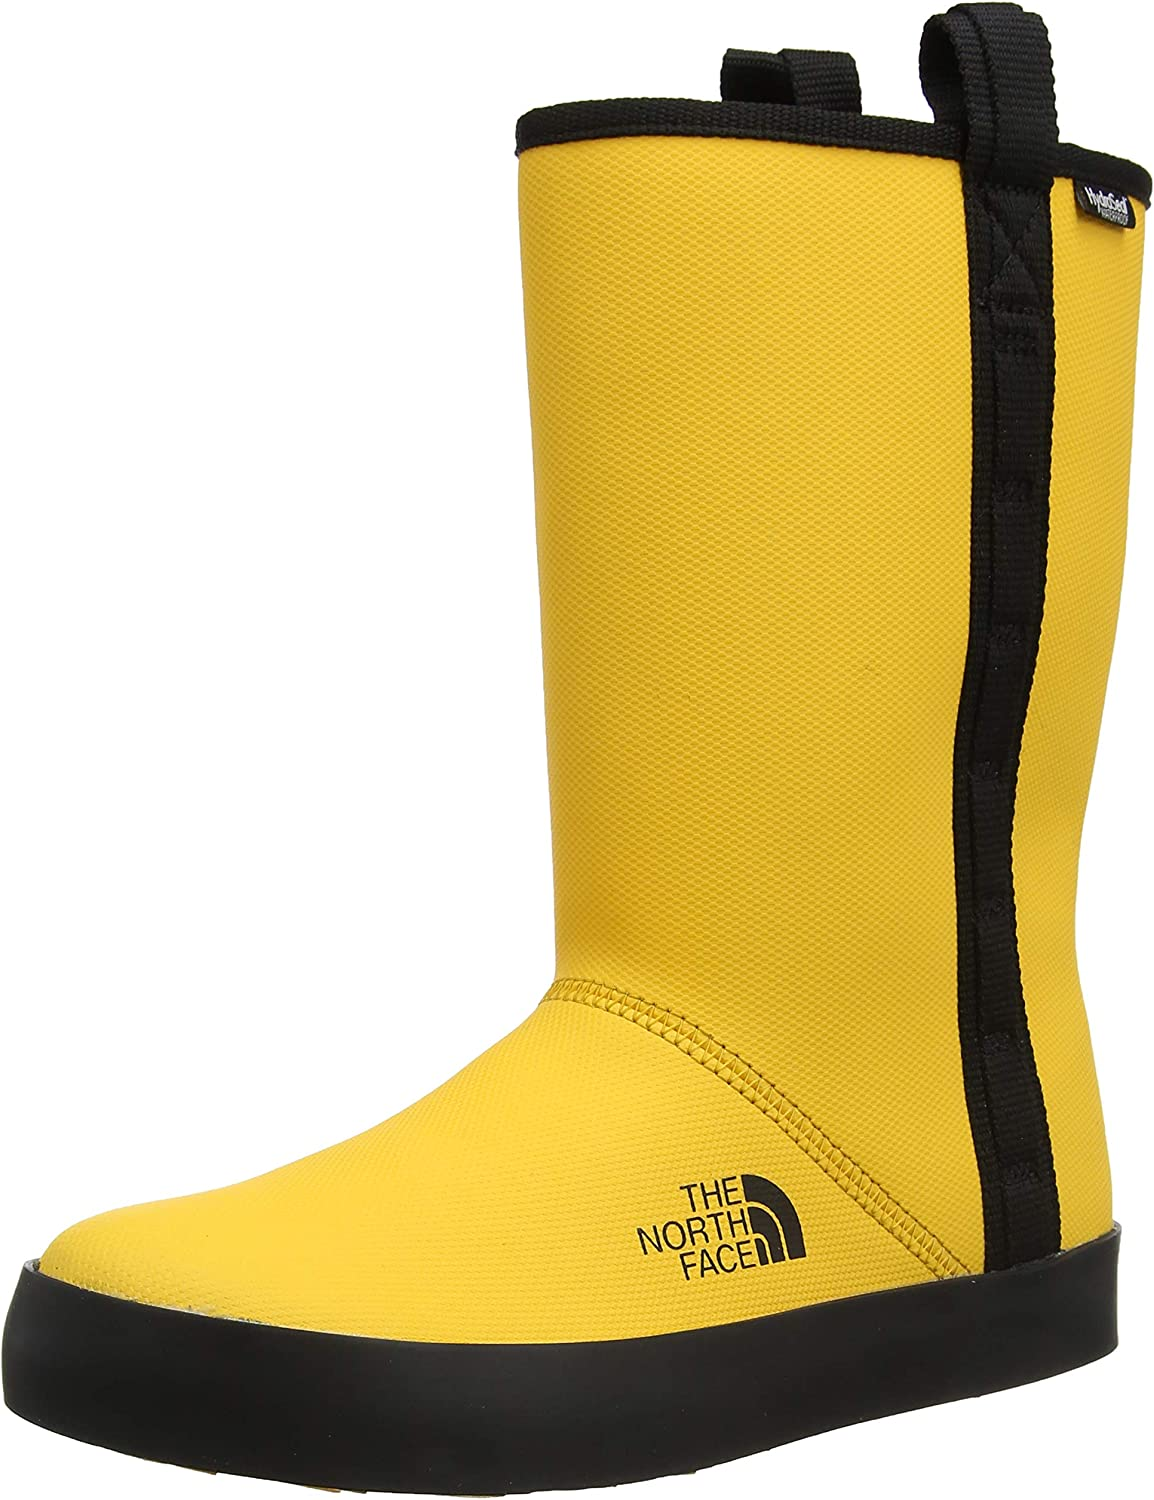 The North Face Women's Basecamp Rain Boot Shorty